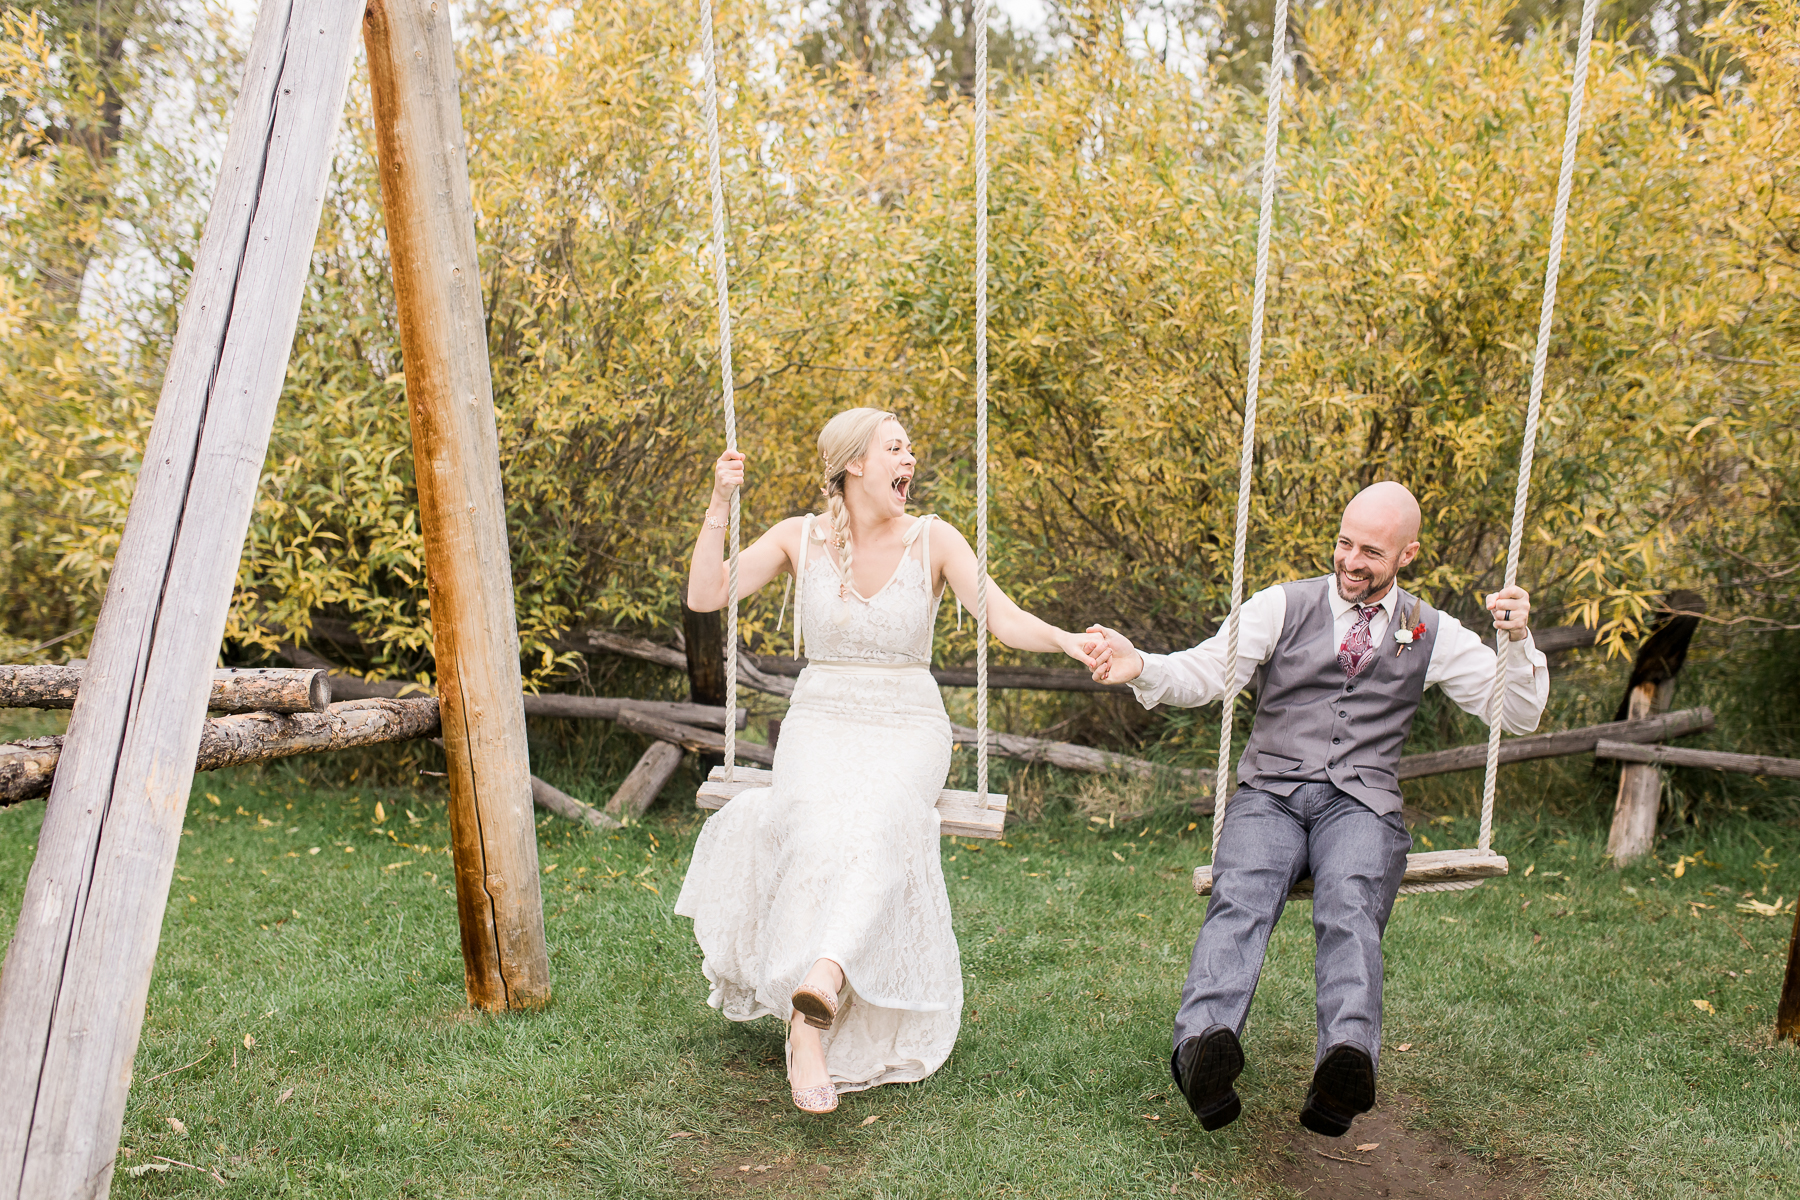 Autumn Wyoming Wedding by Laramie based photographer Megan Lee Photography